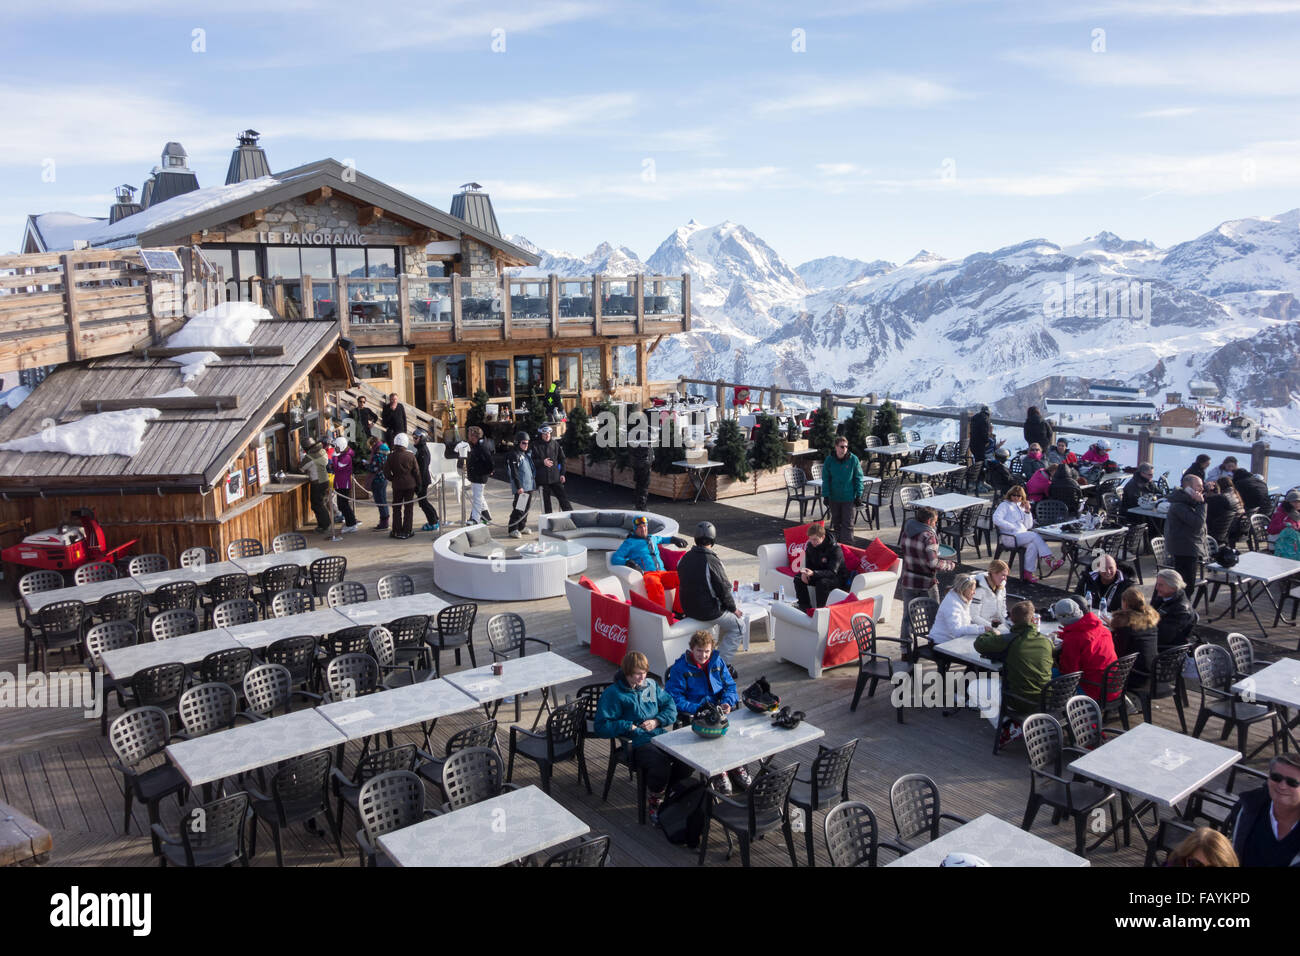 'Le Panoramic' mountain top restaurant, on top of the Saulire accessible from Courchevel and Meribel, French - Stock Image